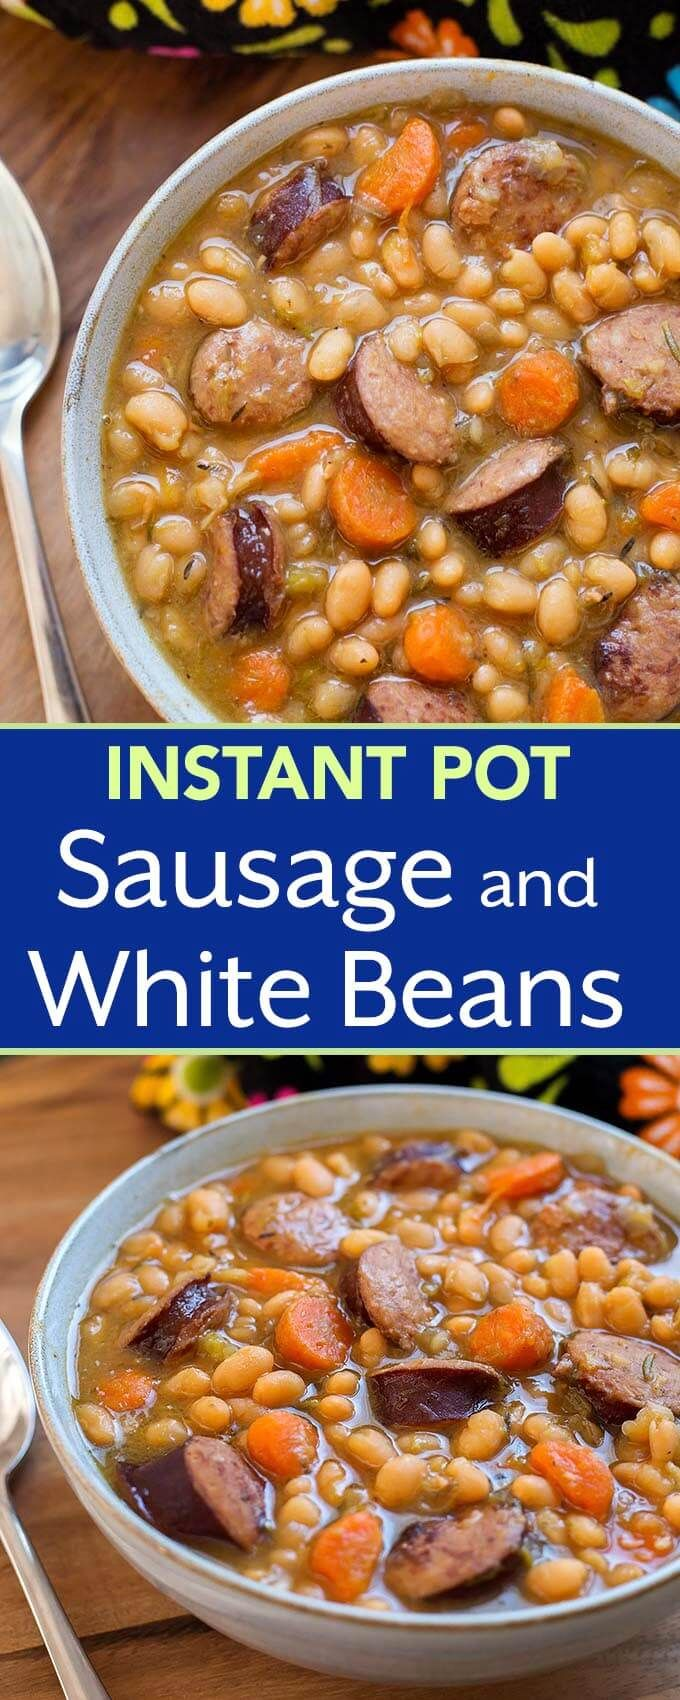 Instant Pot Sausage and White beans with smoky kielbasa or your favorite smoked sausage, onion, garlic, carrots, and white beans. A tasty pressure cooker sausage and beans favorite. simplyhappyfoodie.com #instantpotrecipes #instantpotbeans #instantpotsausageandwhitebeans #pressurecookerbeans #pressurecookersausageandbeans